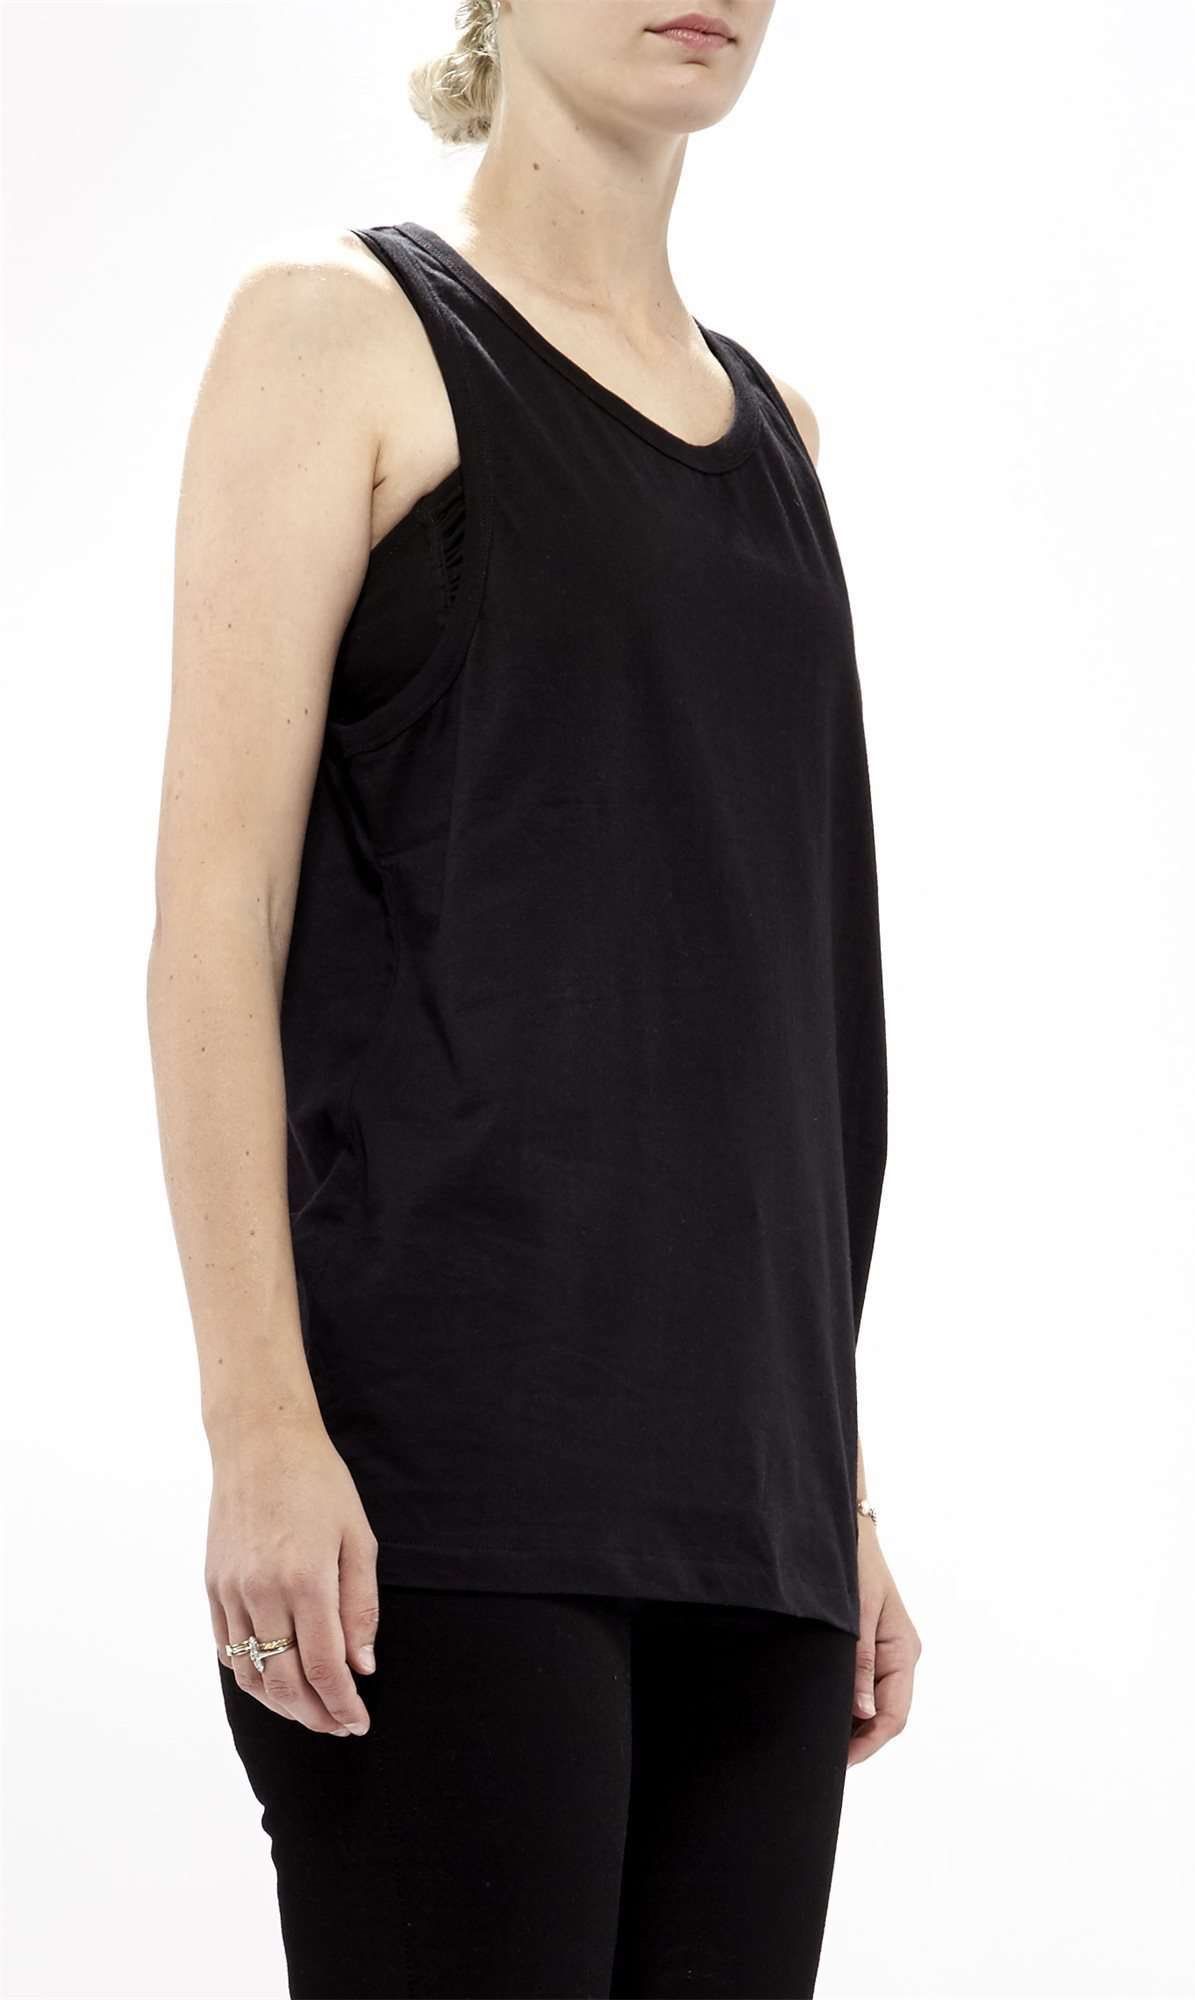 ORIGINAL STOCK TANK TOP - HVID S